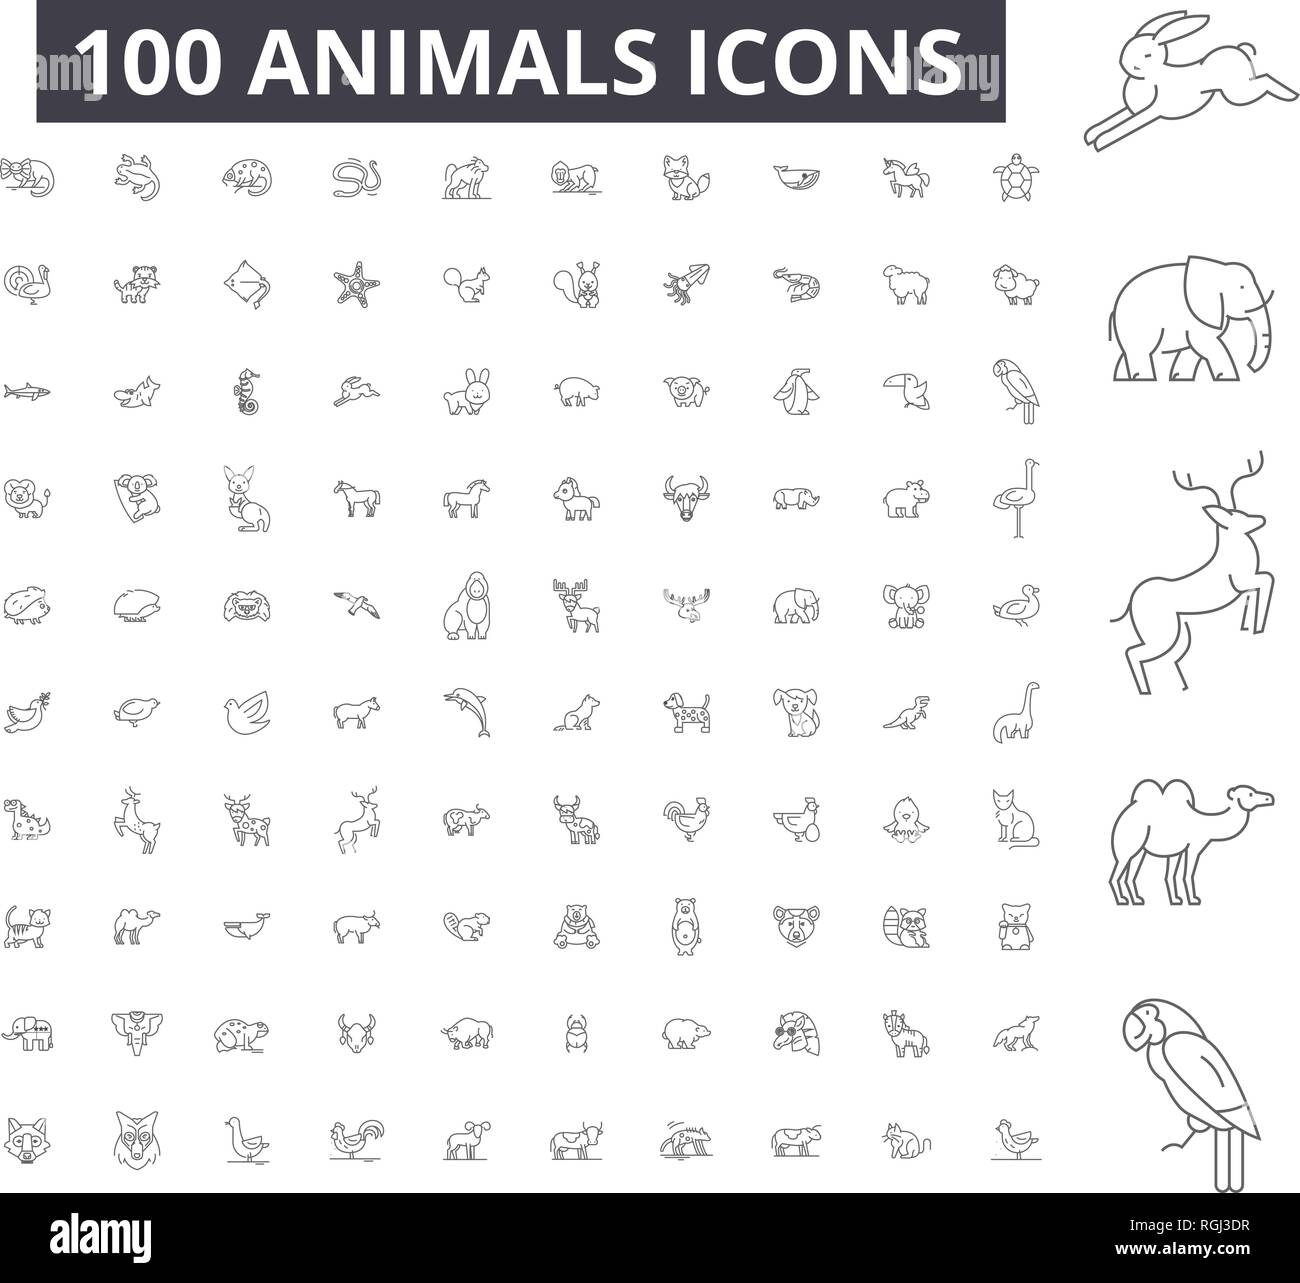 Animals editable line icons, 100 vector set, collection. Animals black outline illustrations, signs, symbols - Stock Image